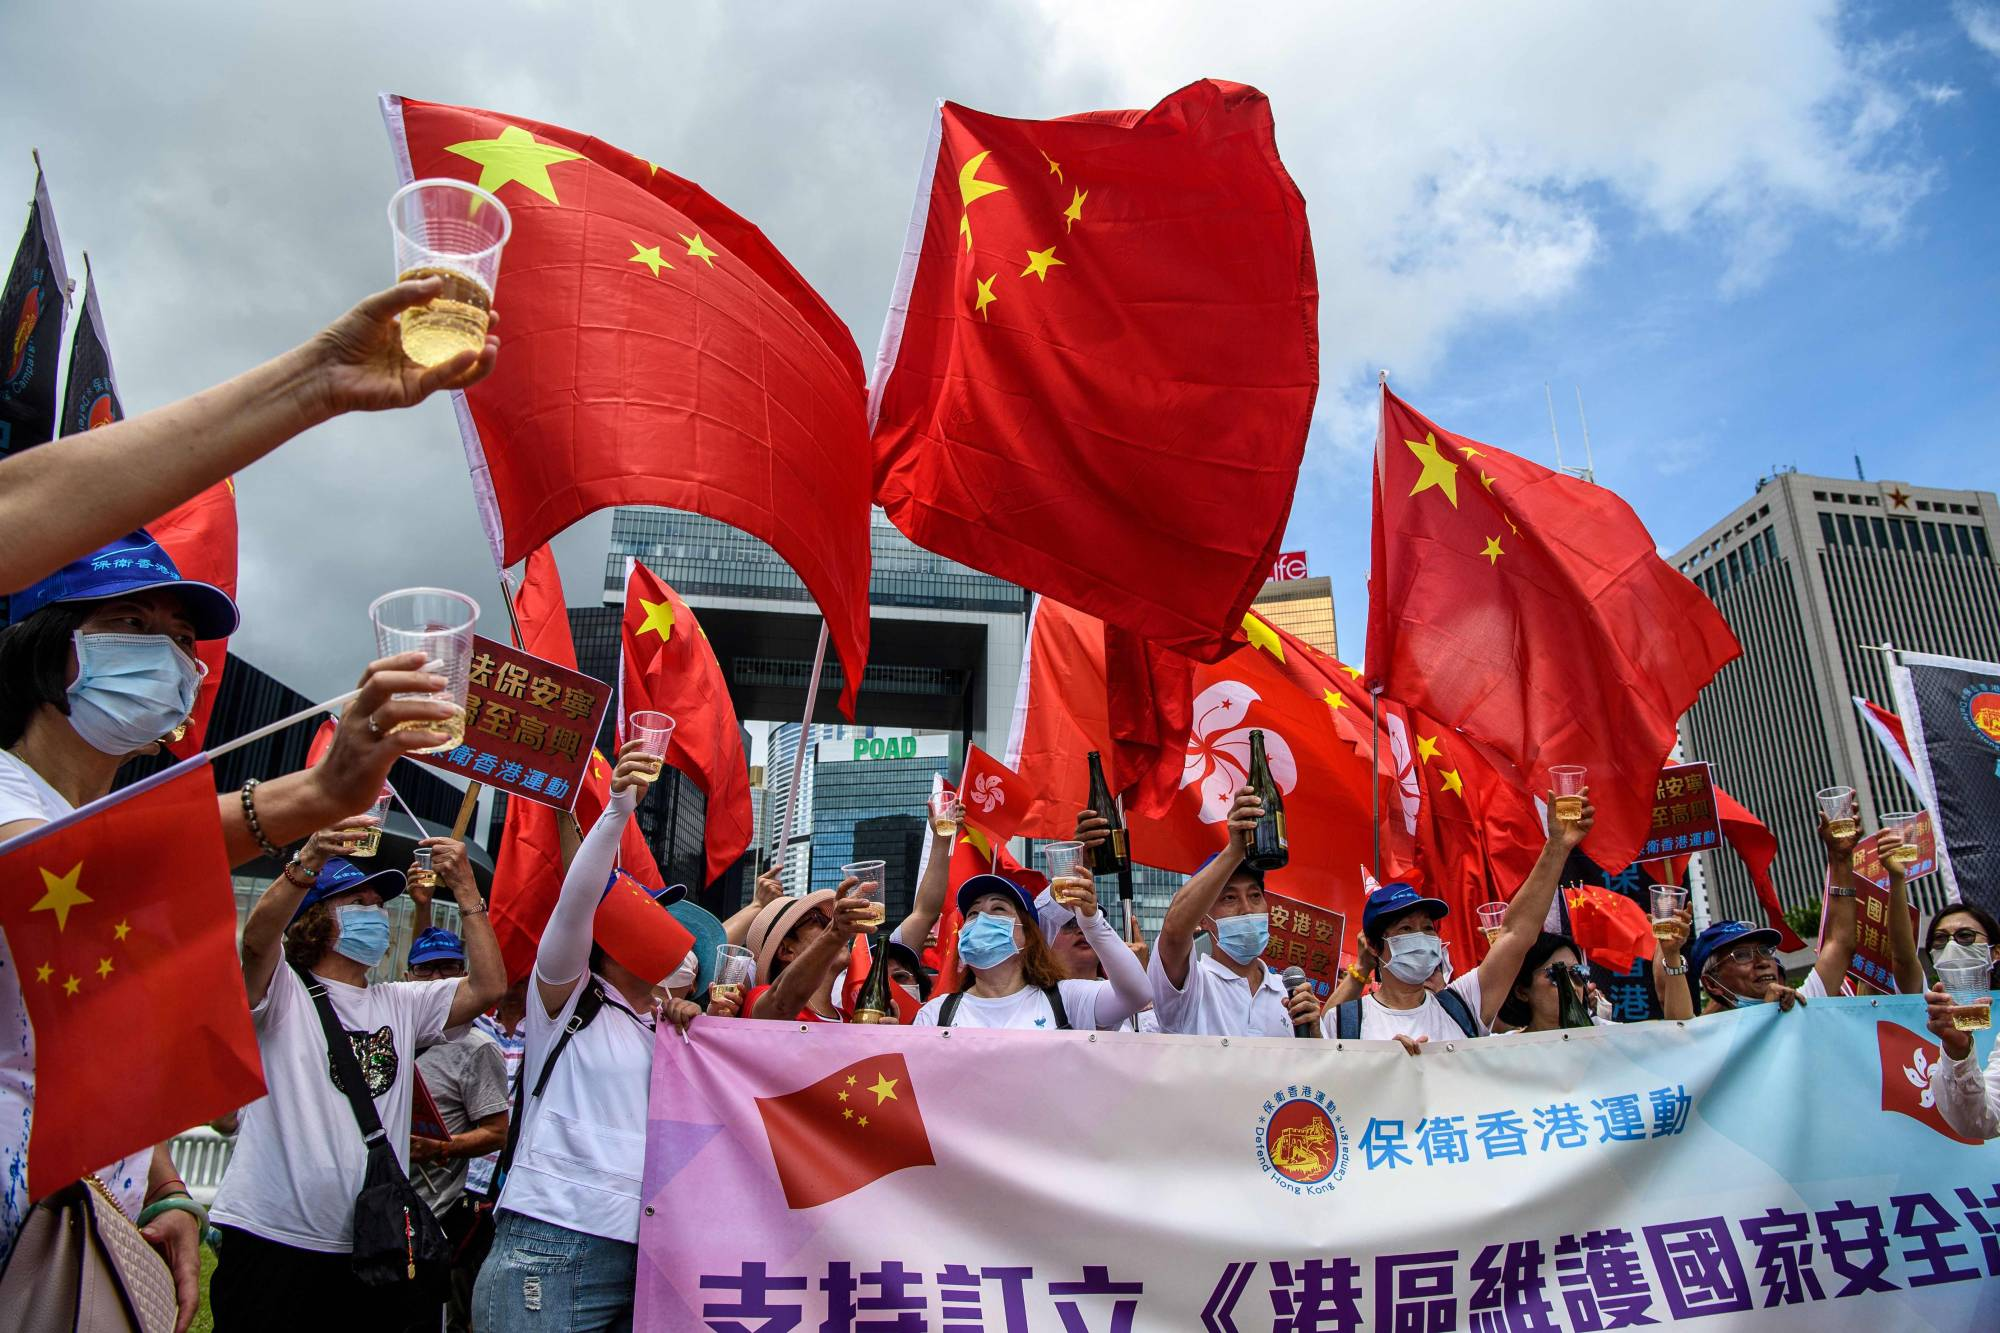 Pro-China supporters display Chinese and Hong Kong flags as they raise a toast with champagne during a rally near the government headquarters in Hong Kong on Tuesday after Beijing passed a sweeping national security law for the city.   AFP-JIJI